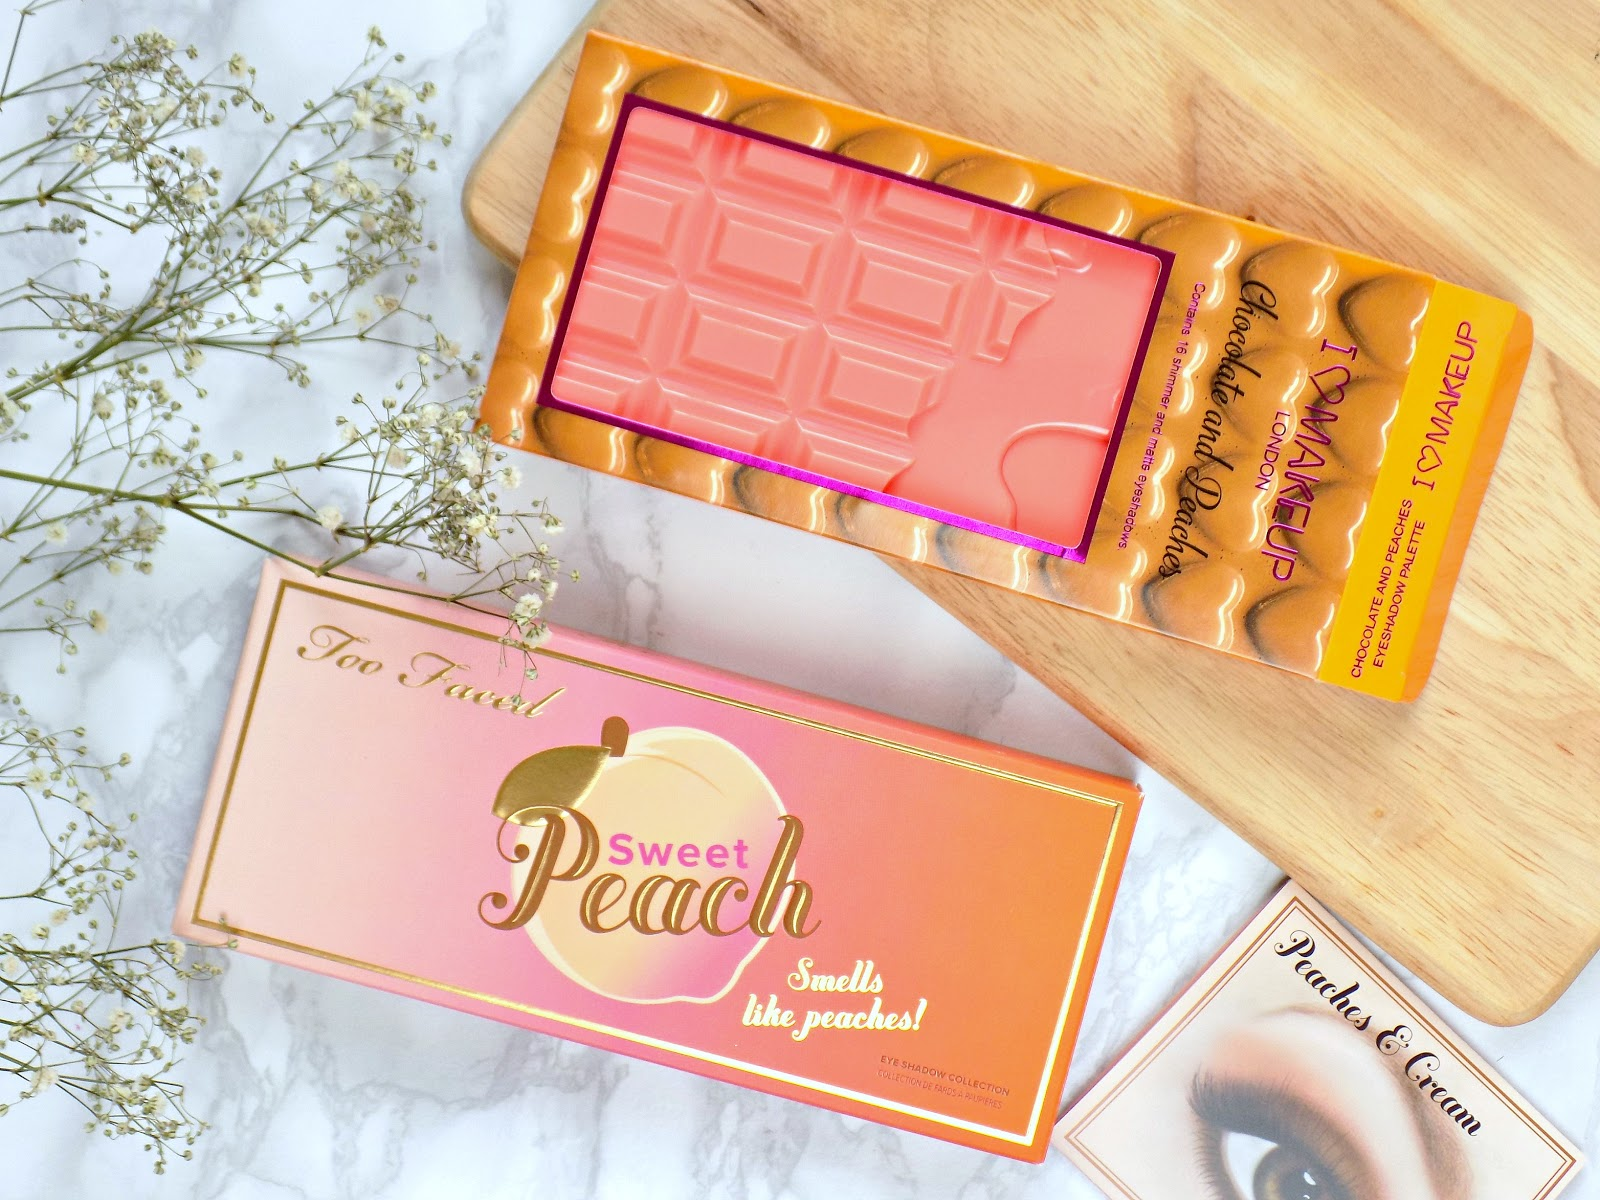 Too Faced Sweet Peach palette vs I Heart Makeup Chocolate And Peaches palette